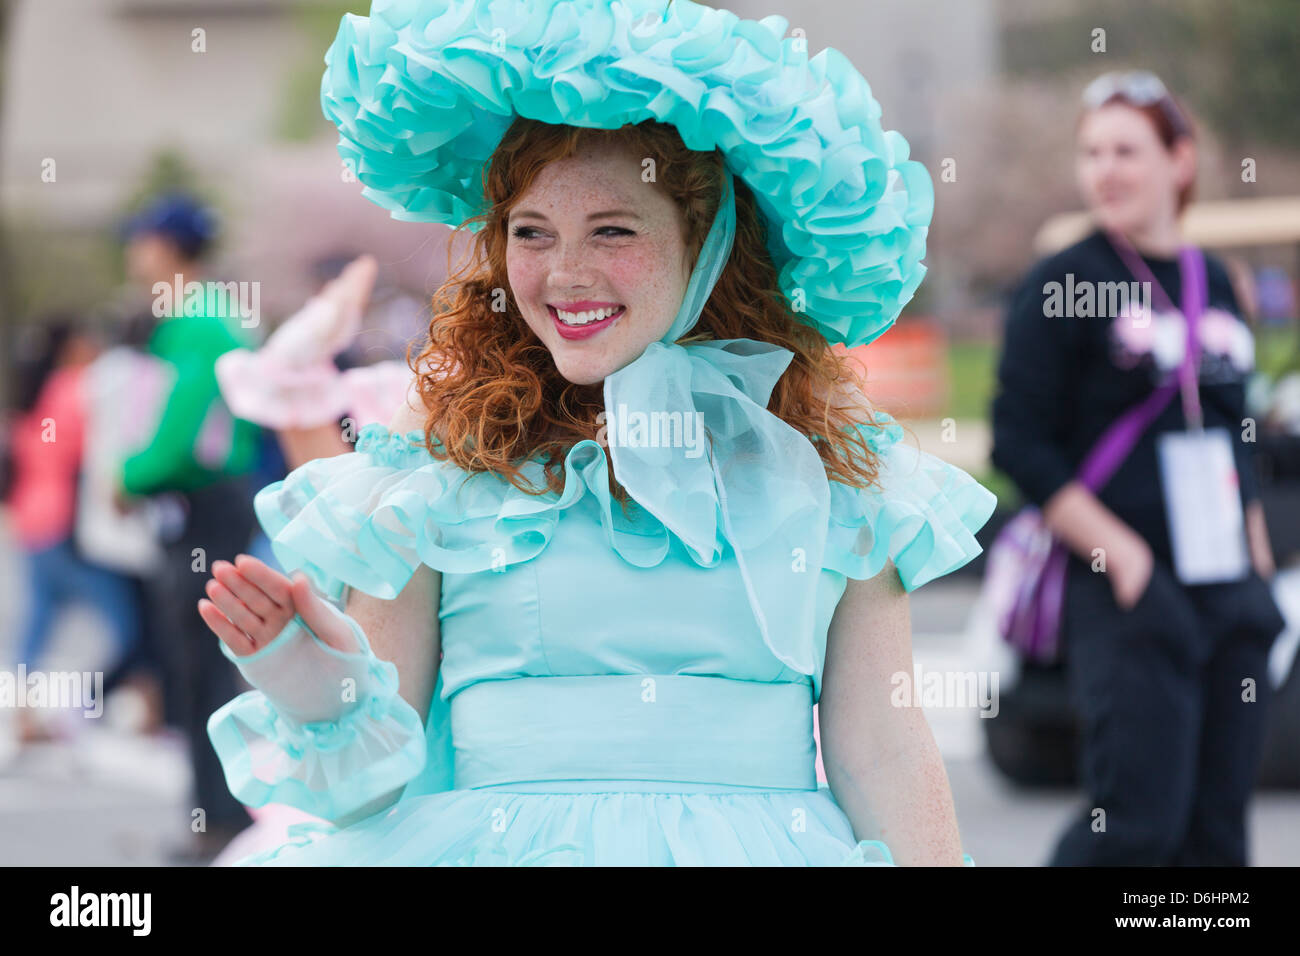 Young freckled girl wearing southern belle costume - USA - Stock Image